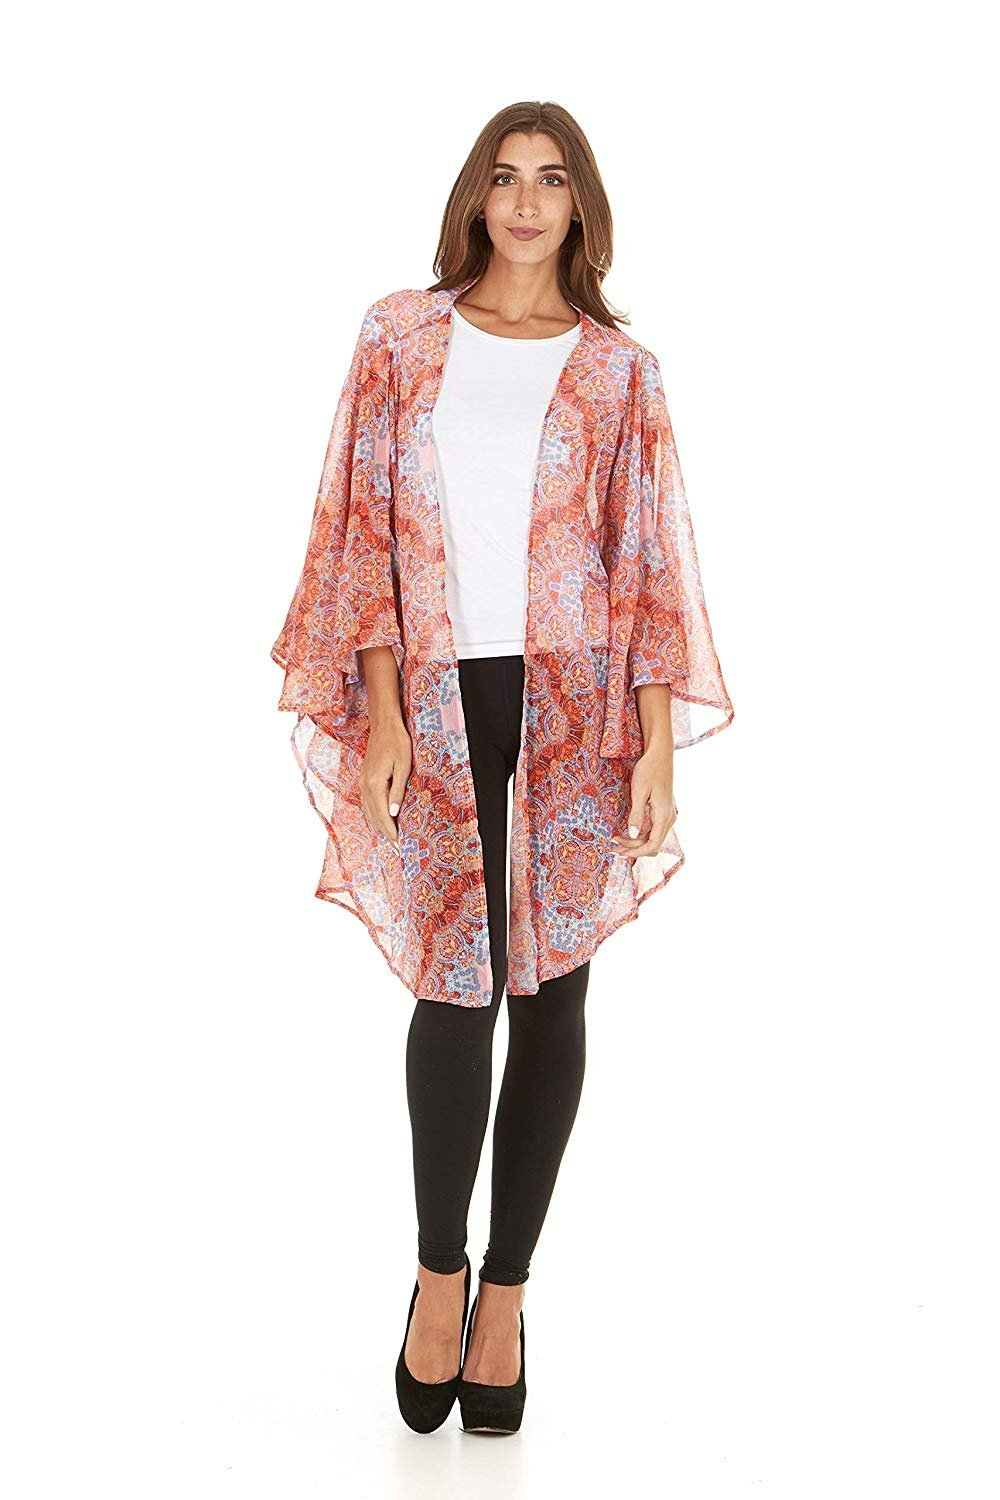 Laundry By Shelli Segal Women Loose Cold Shoulder Kaftan Kimono Cardigan Cape